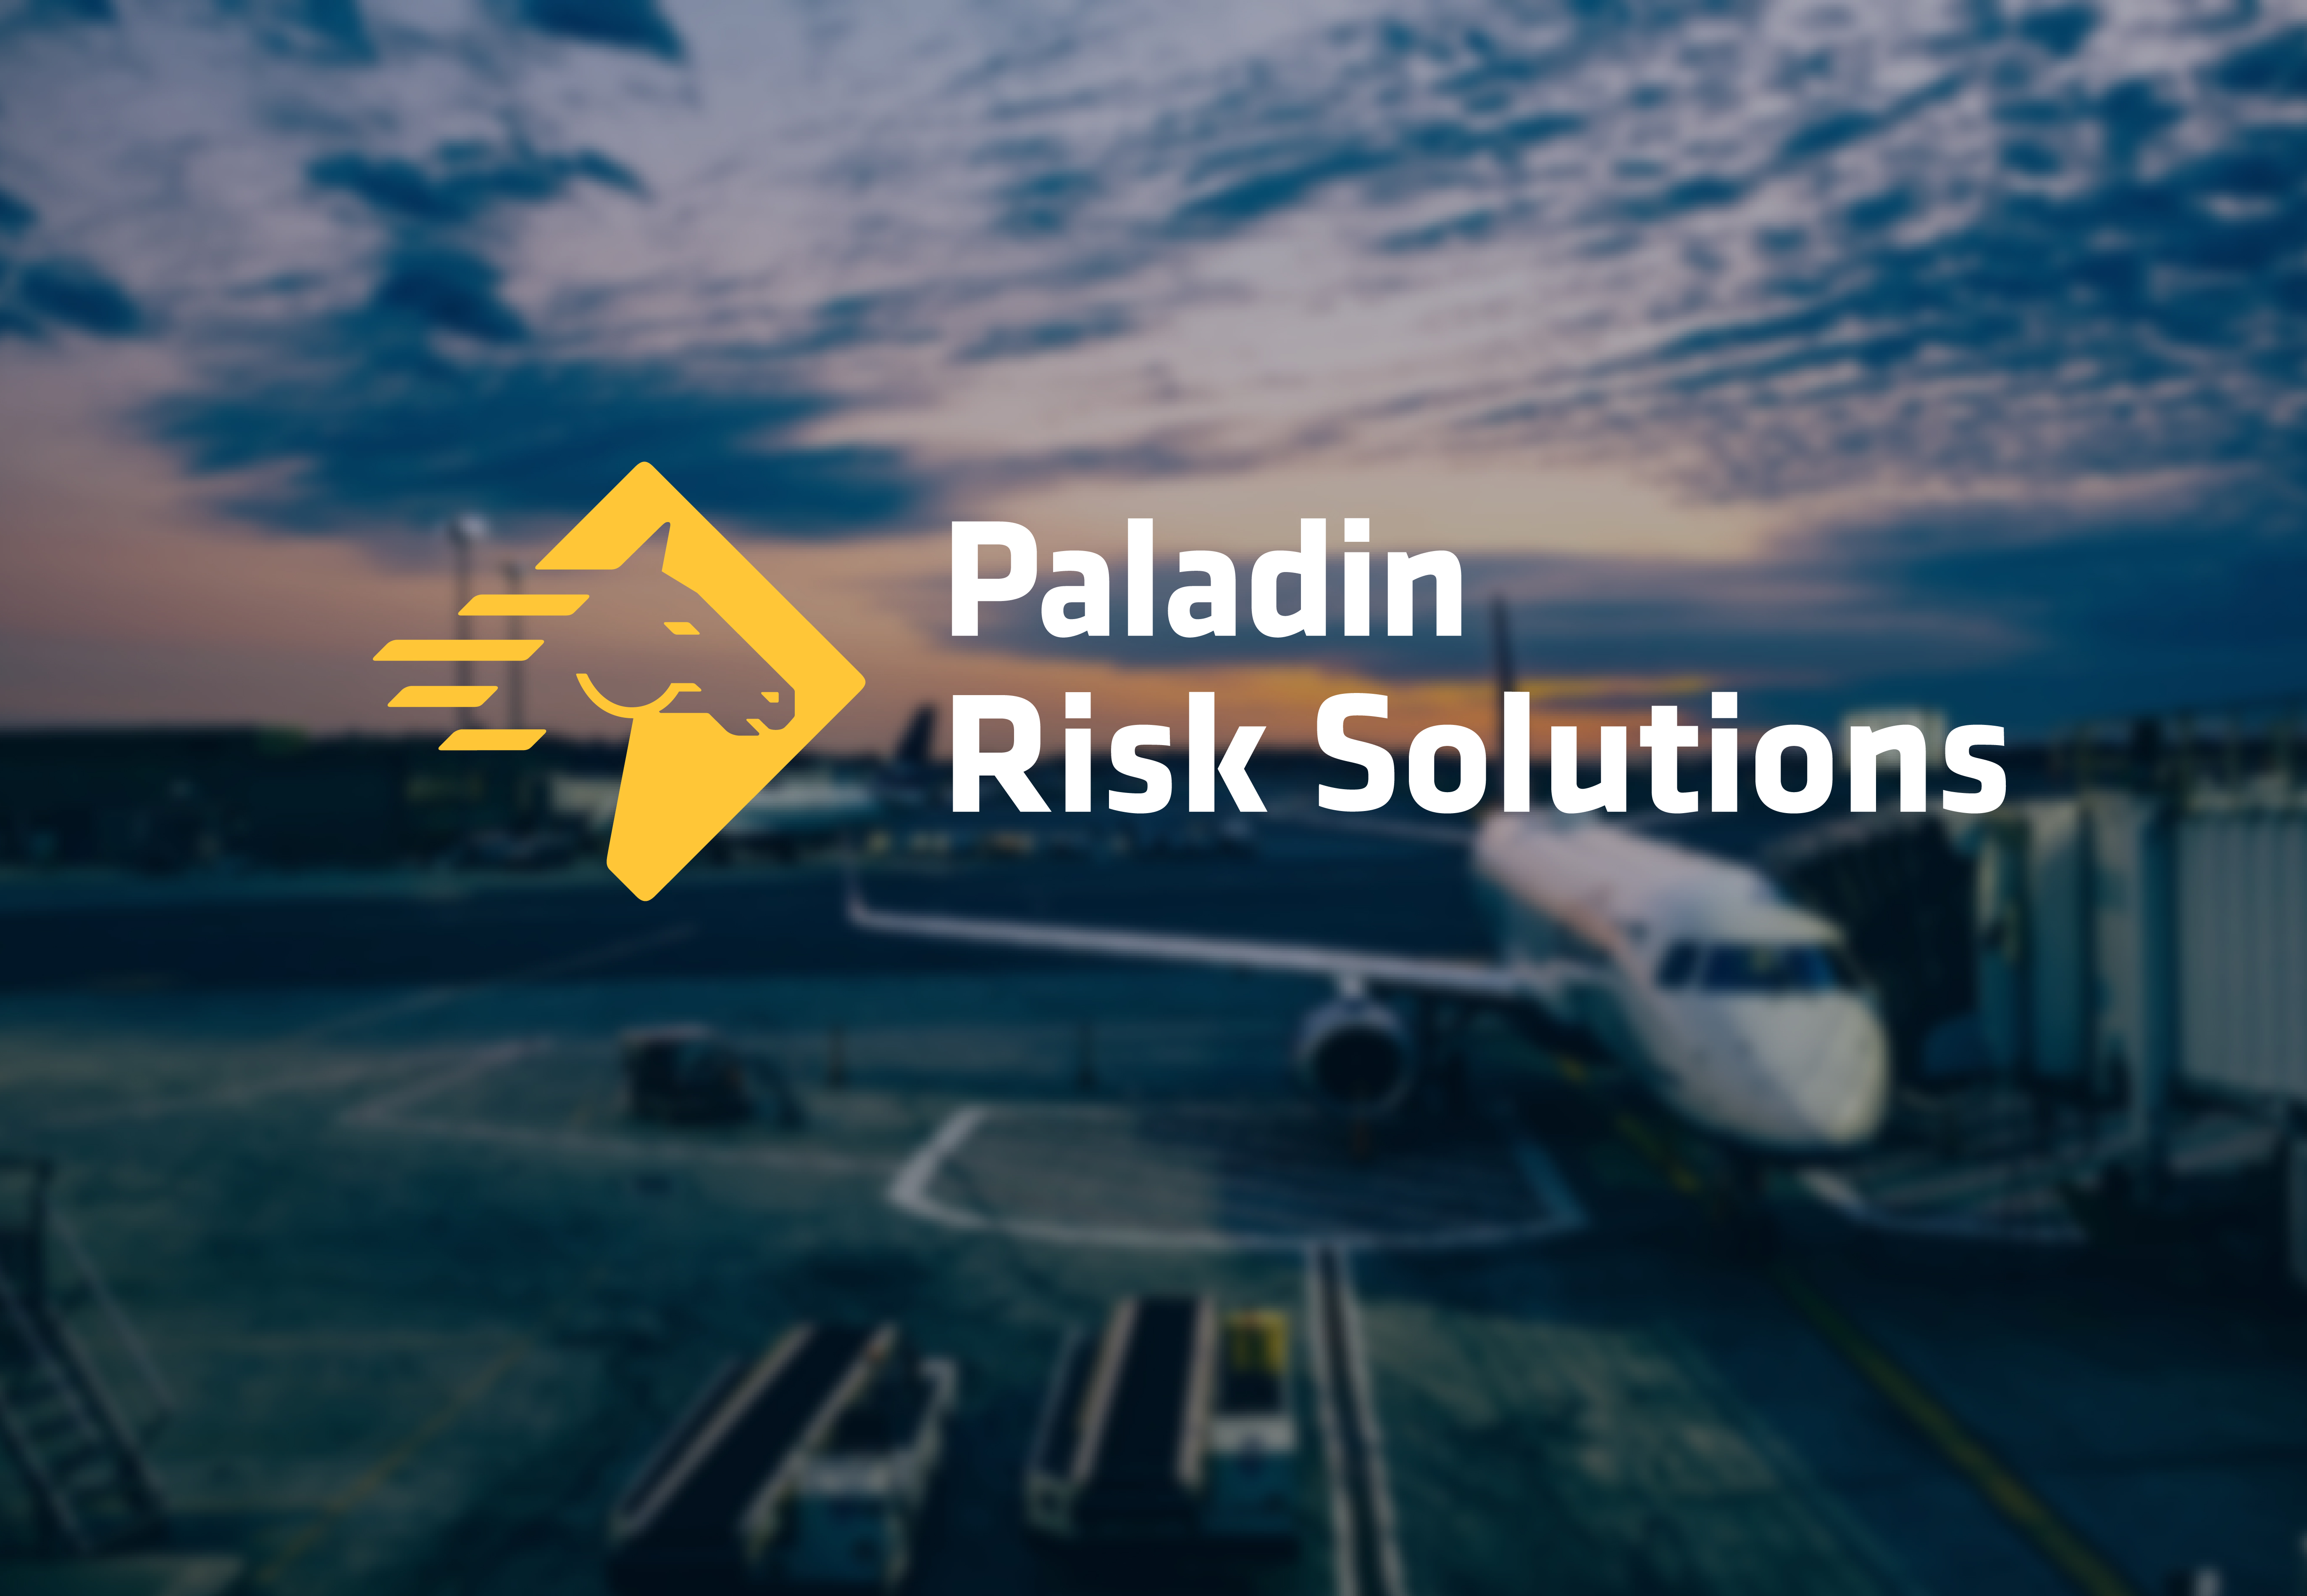 https://paladinrisksolutions.com/wp-content/uploads/2019/11/PRSI-01.jpg